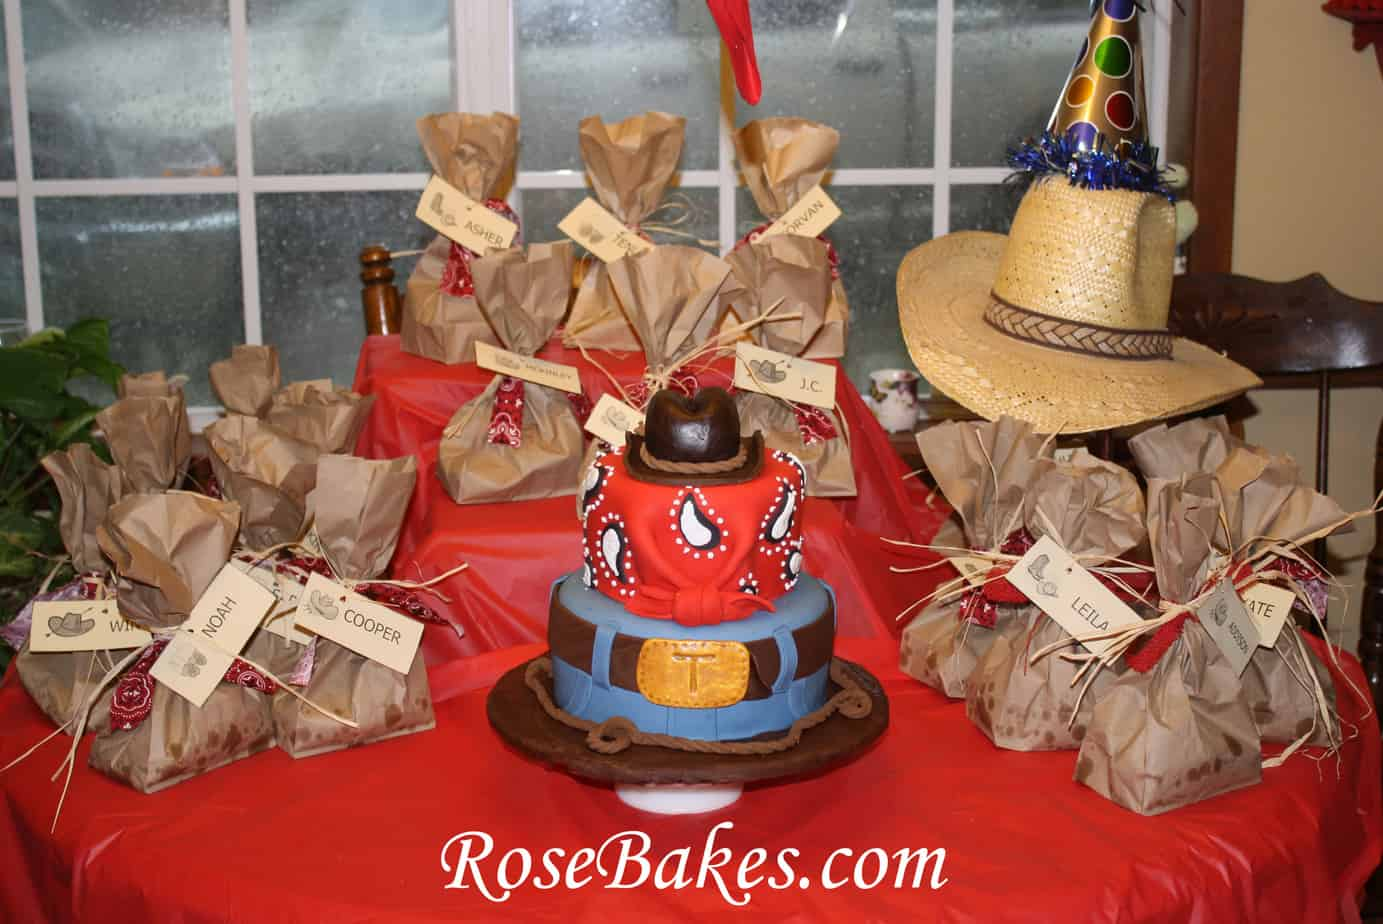 Tuckers Cowboy Cake On Display Rose Bakes